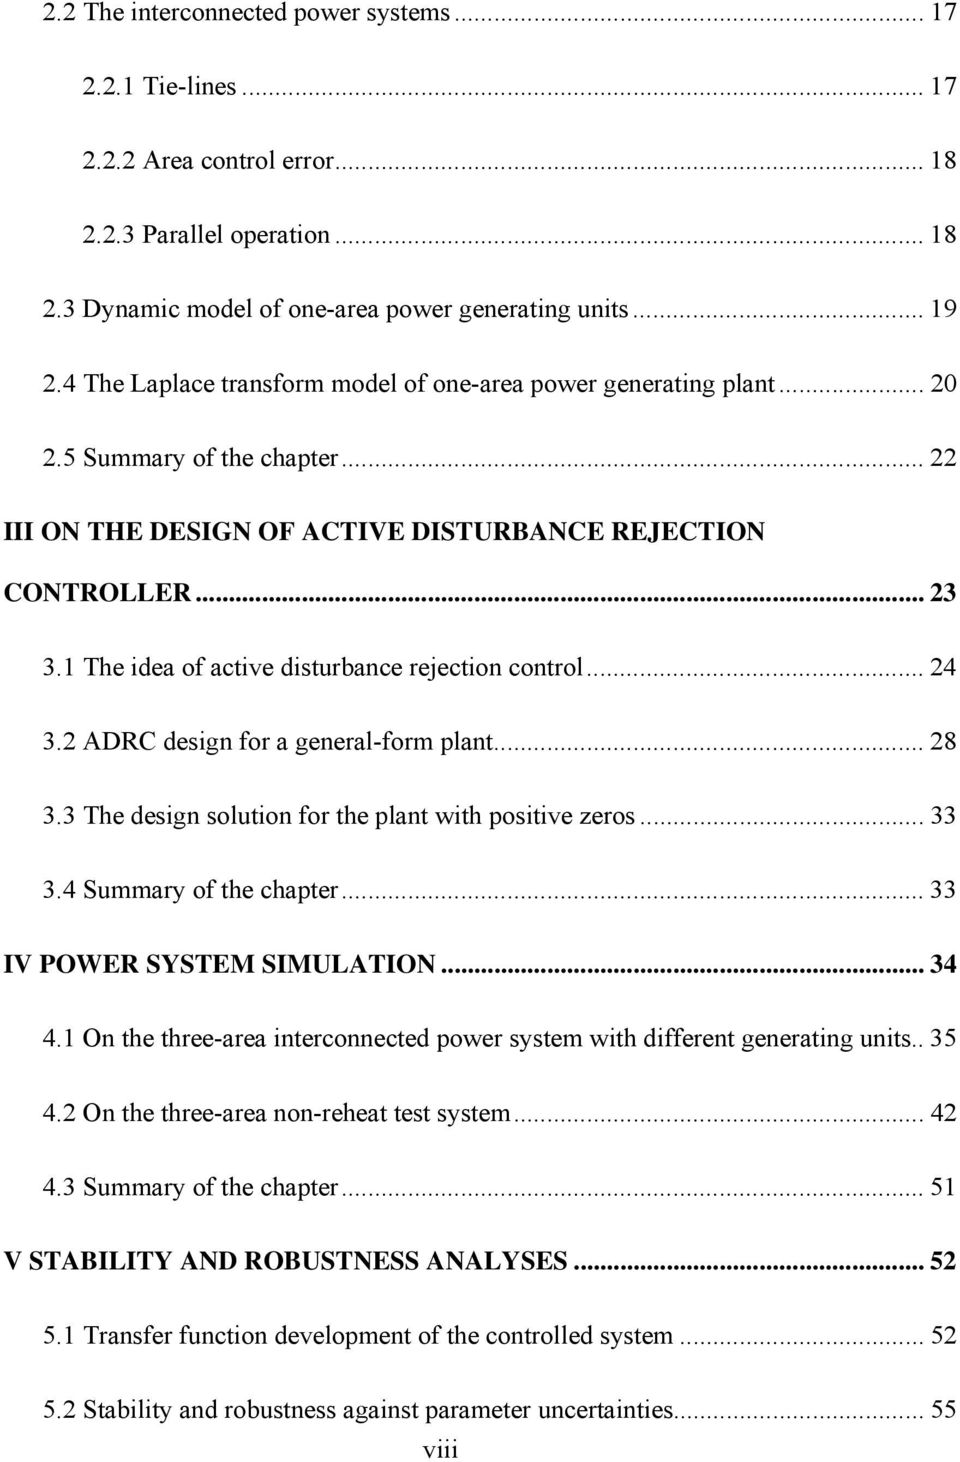 1 The idea of active disturbance rejection control... 24 3.2 ADRC design for a general-form plant... 28 3.3 The design solution for the plant with positive zeros... 33 3.4 Summary of the chapter.